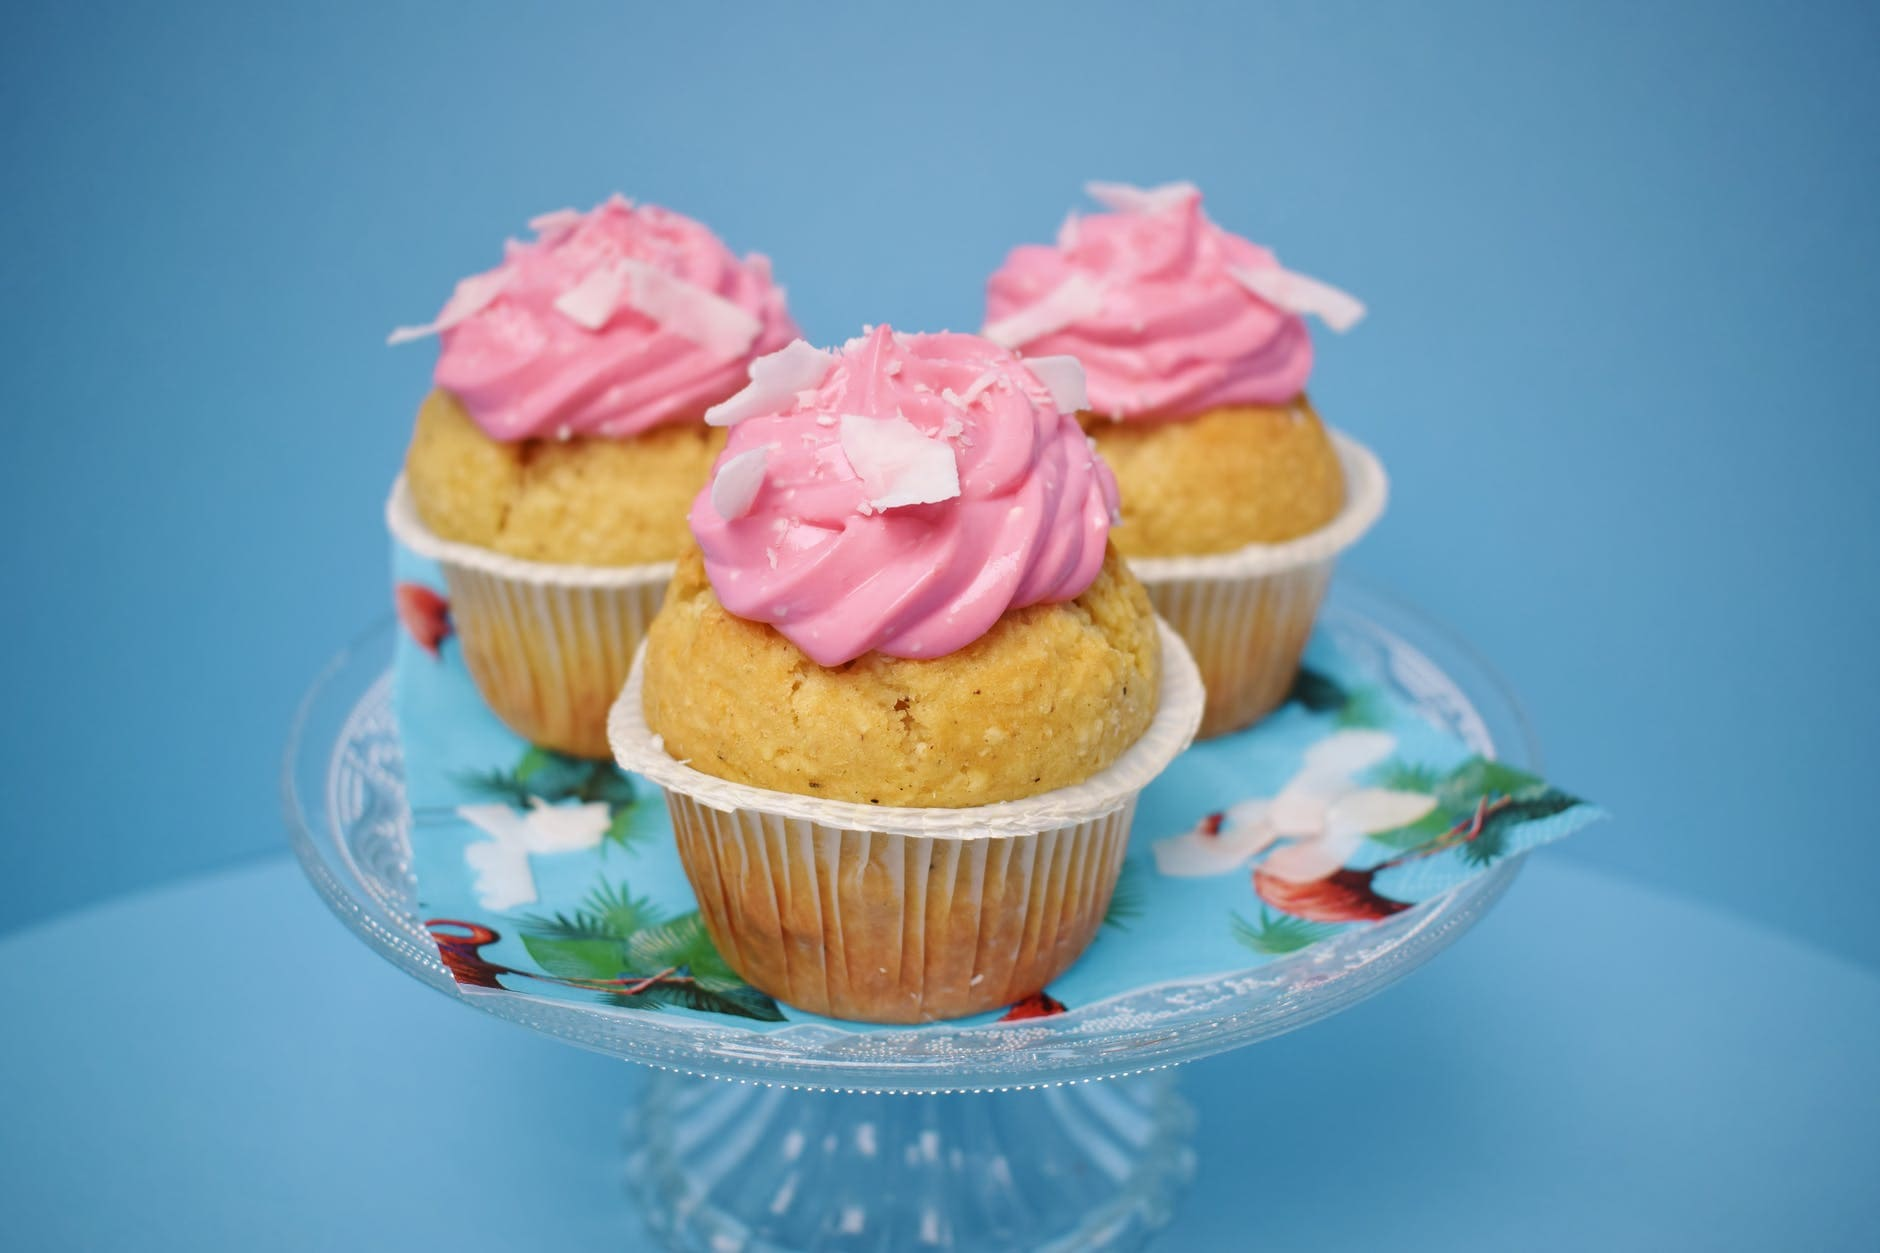 How to make a cupcake with dried fruits